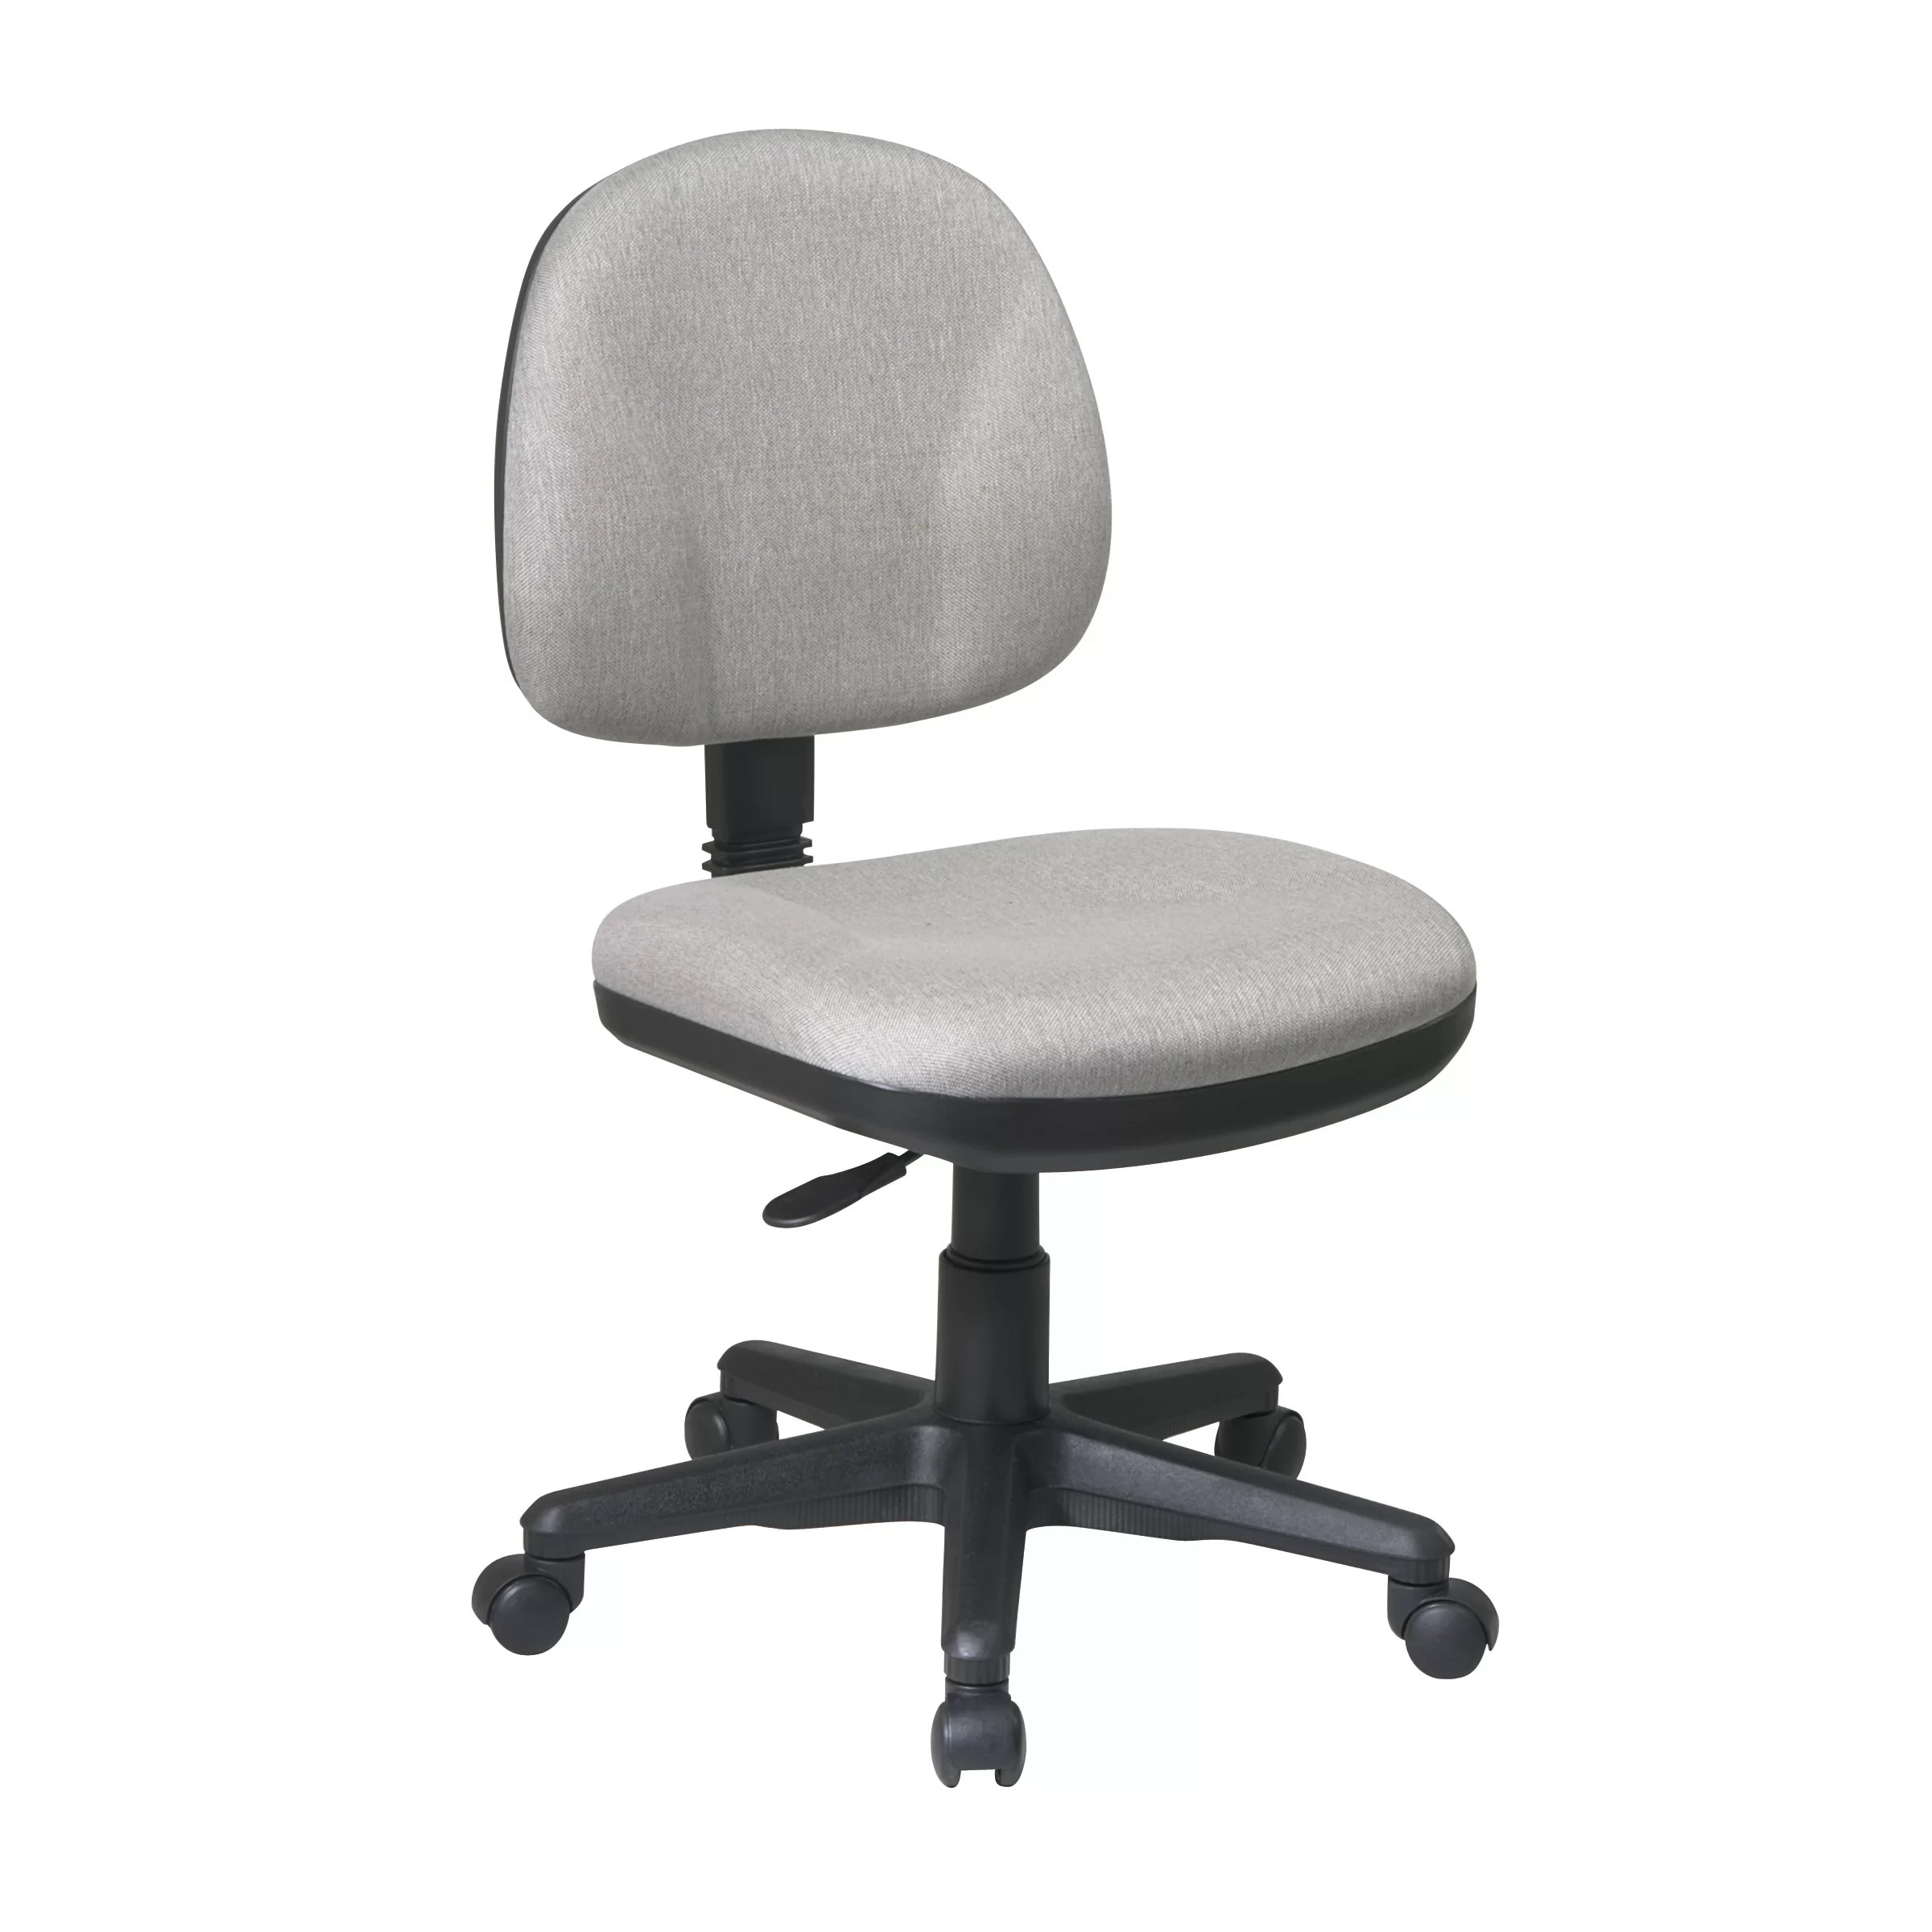 task chair without arms office chairs melbourne star sculptured low back